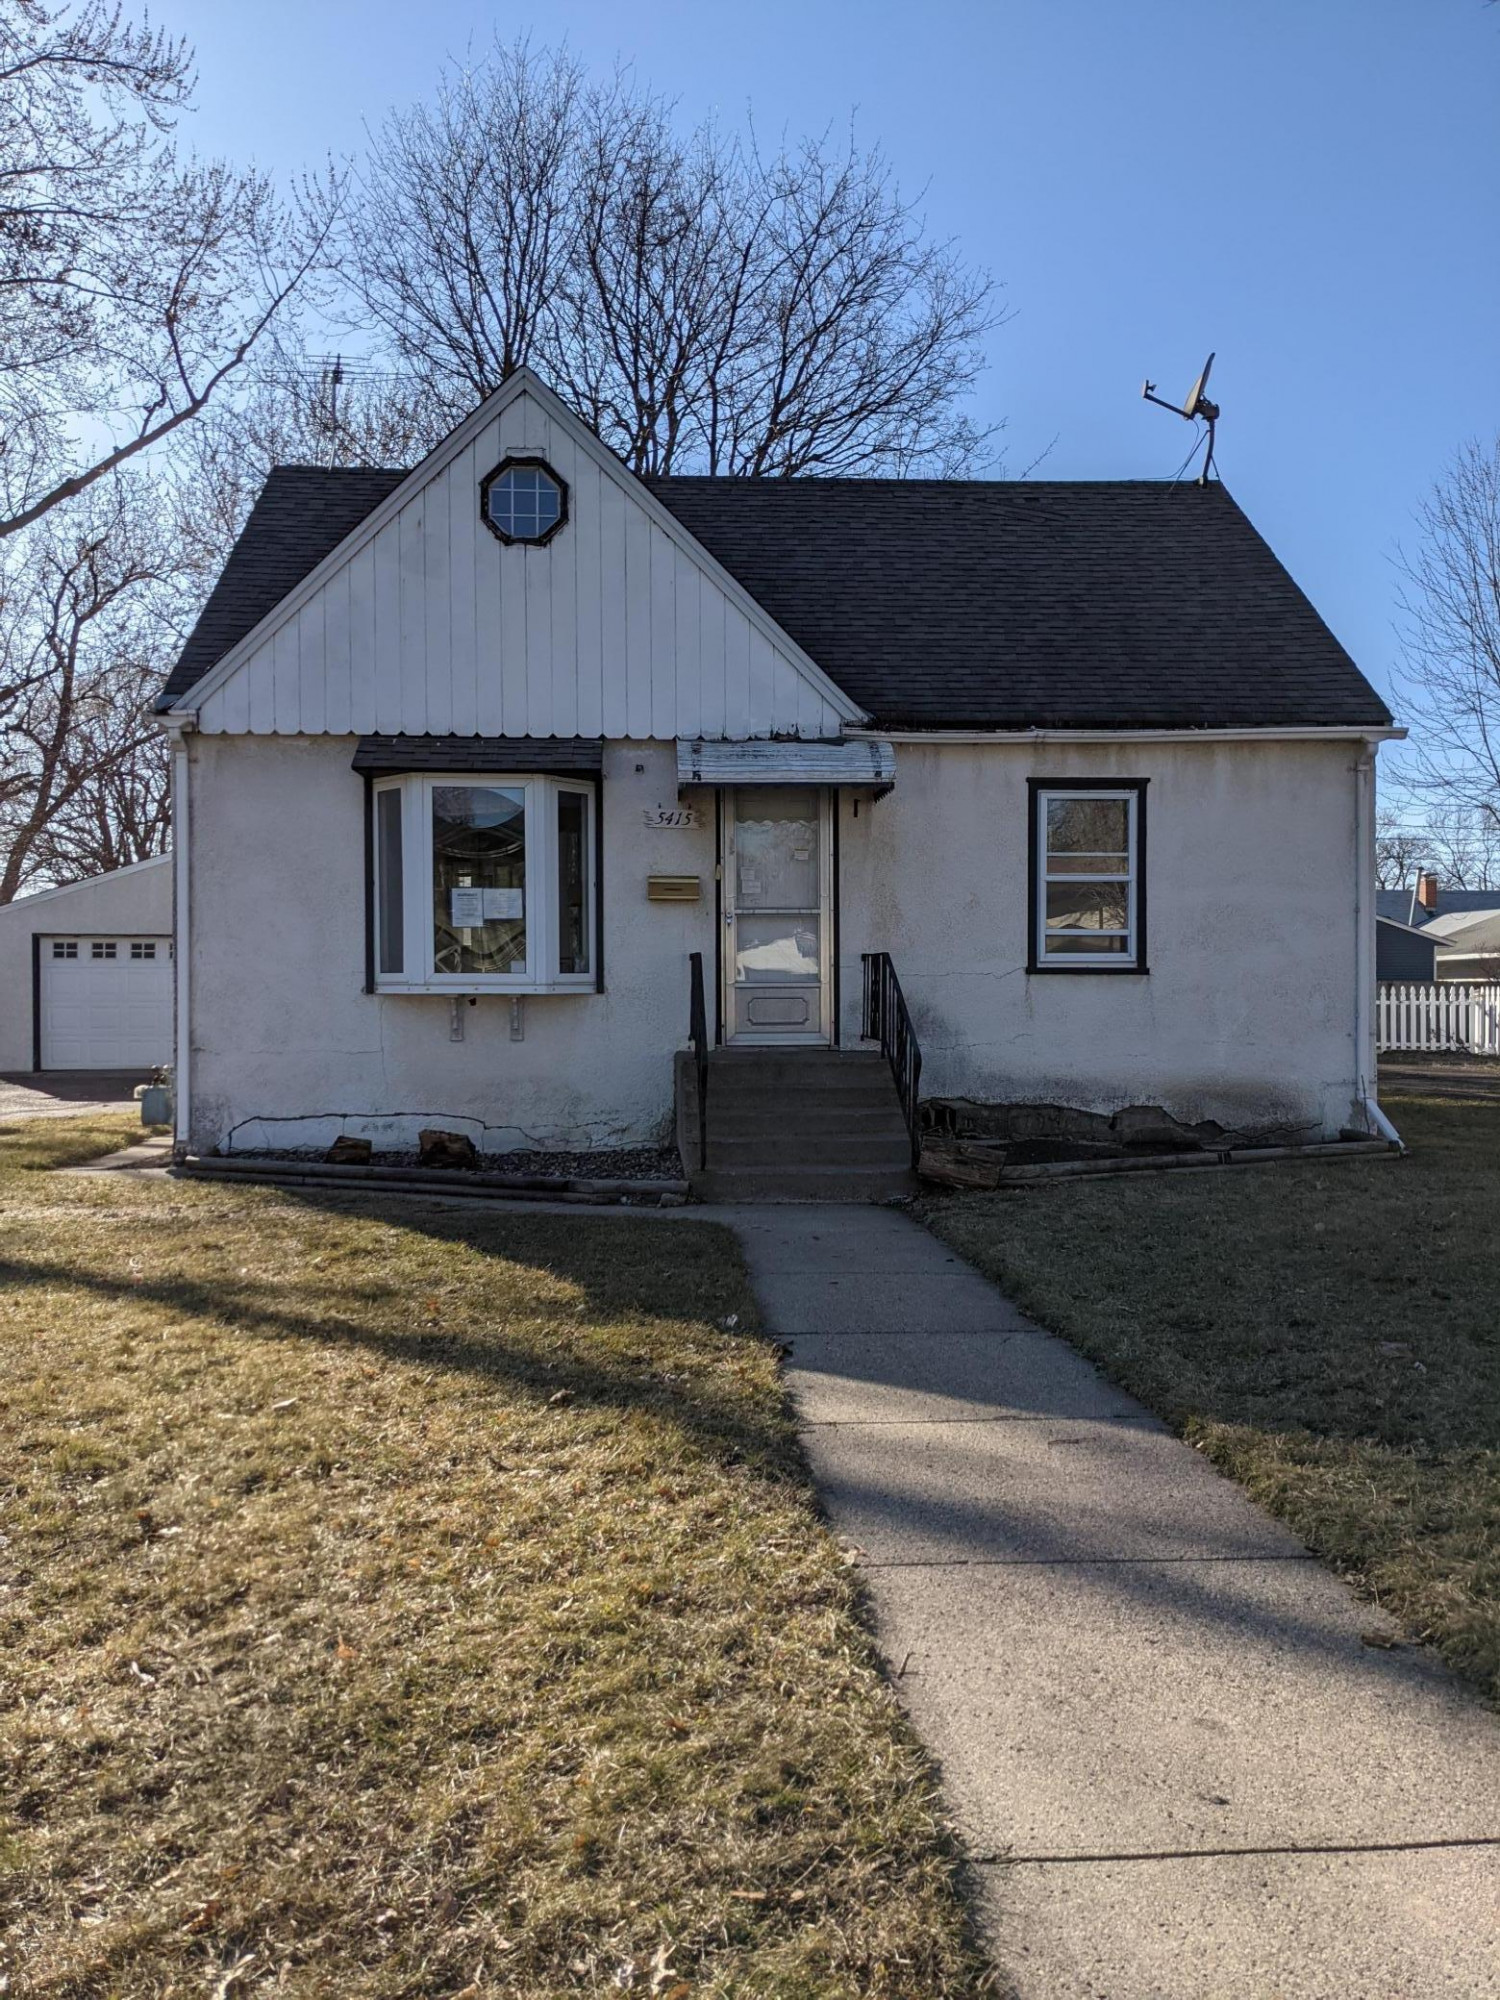 Welcoe to 5415 Dupon Ave N. this home is ready to receive some love from it's new owner.